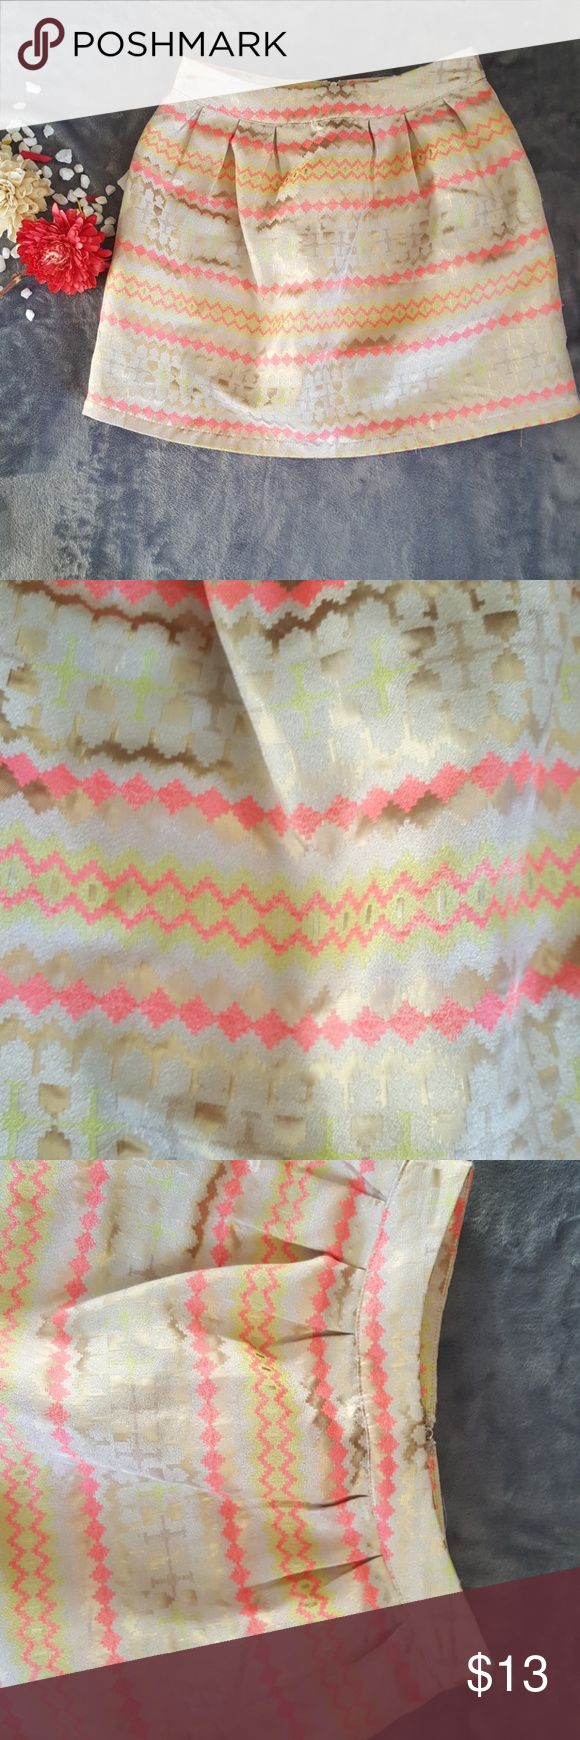 Tribal Print Skirt The color on this skirt is super vibrant and and stands out so much. There are no stains or loose strings and it has been washed and air dried already. It goes so amazing for summer and all the nice colors. jun&ivy Skirts A-Line or Full